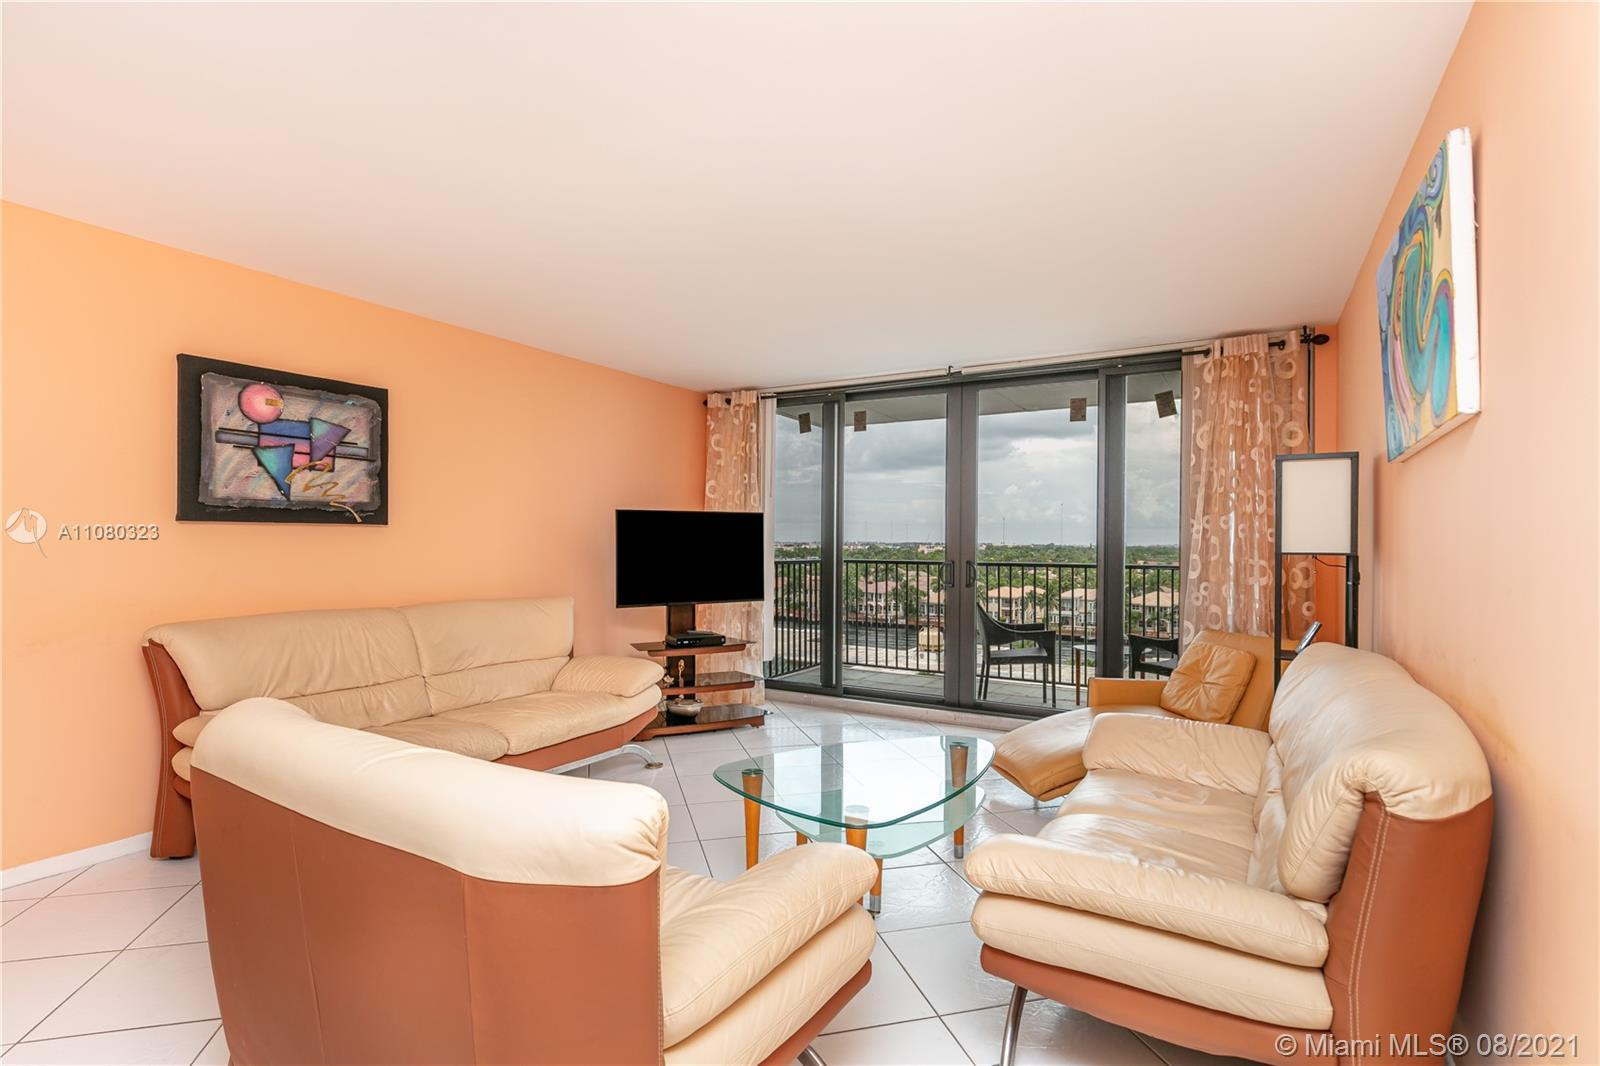 Move-in ready and fully furnished, this unit features 1 br /2 full bath, just installed hurricane pr